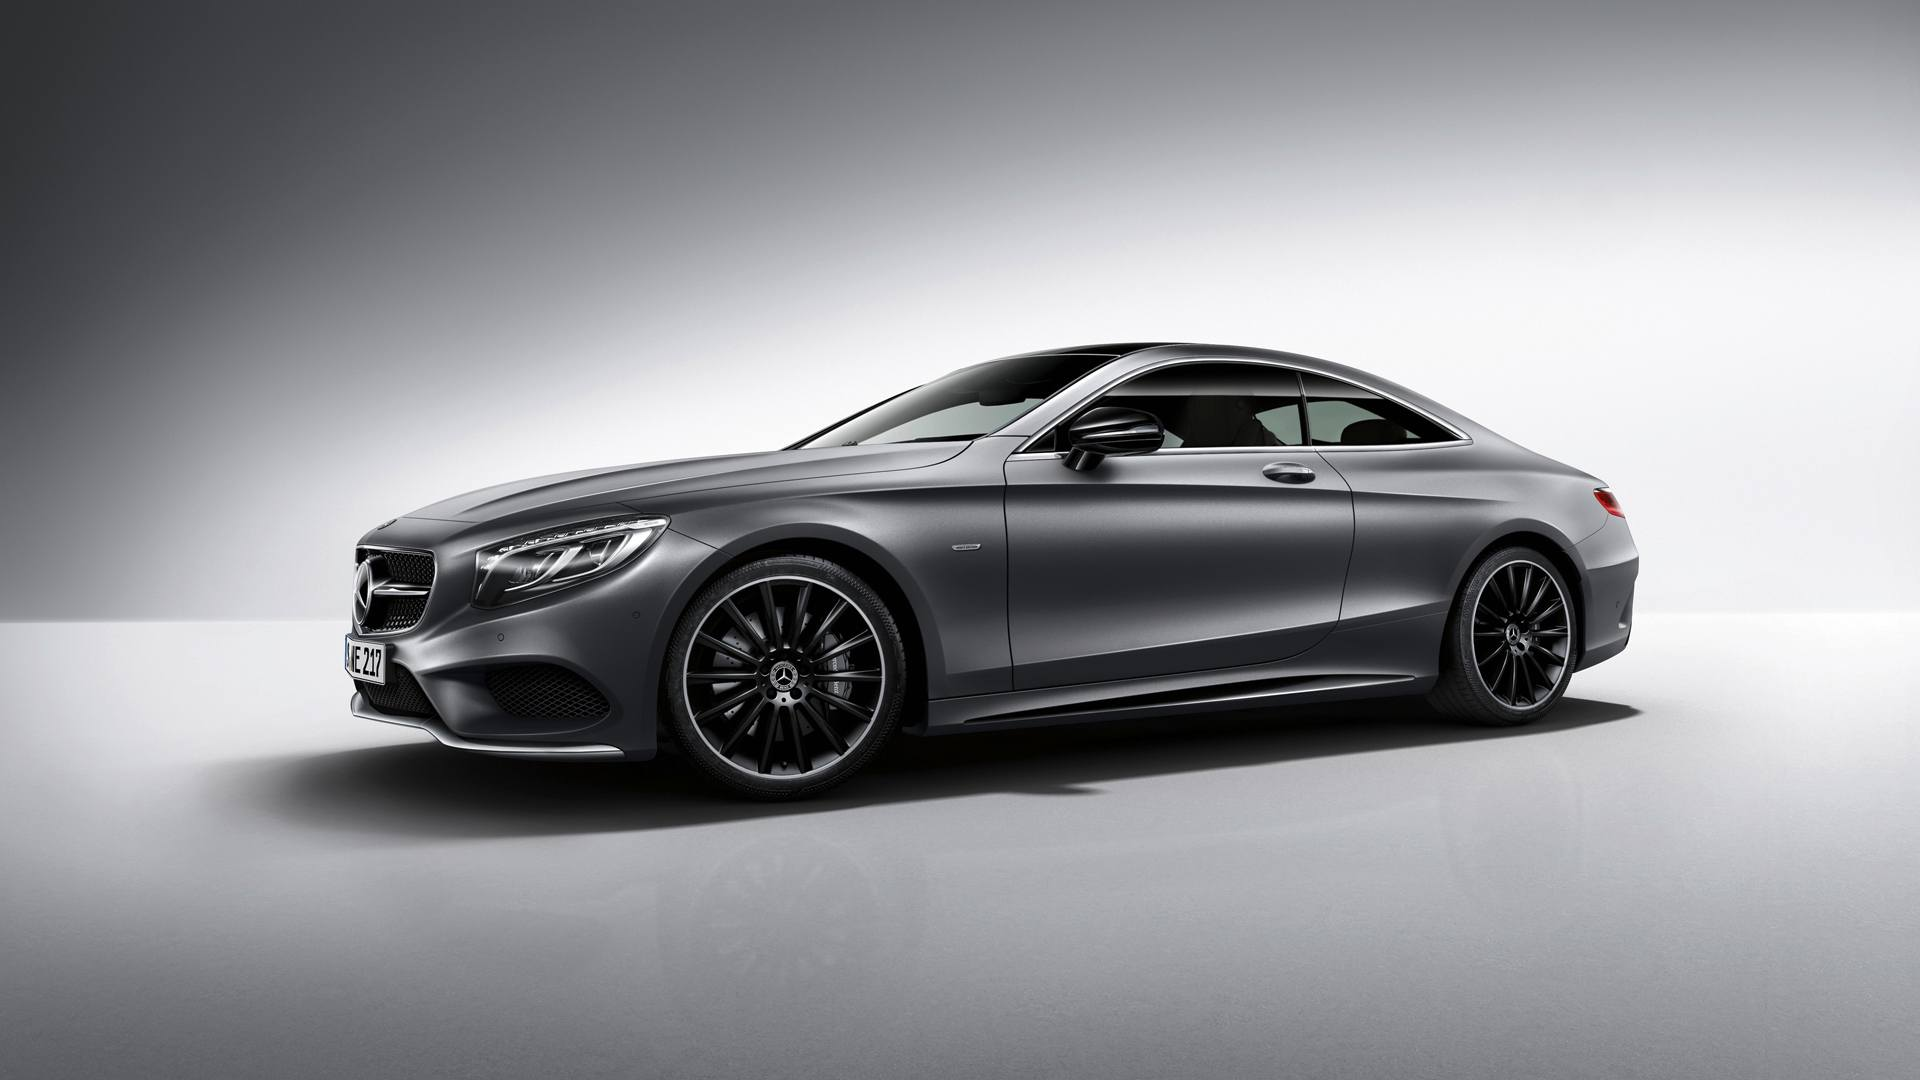 mercedes-s-class-coupe-night-edition-01-1